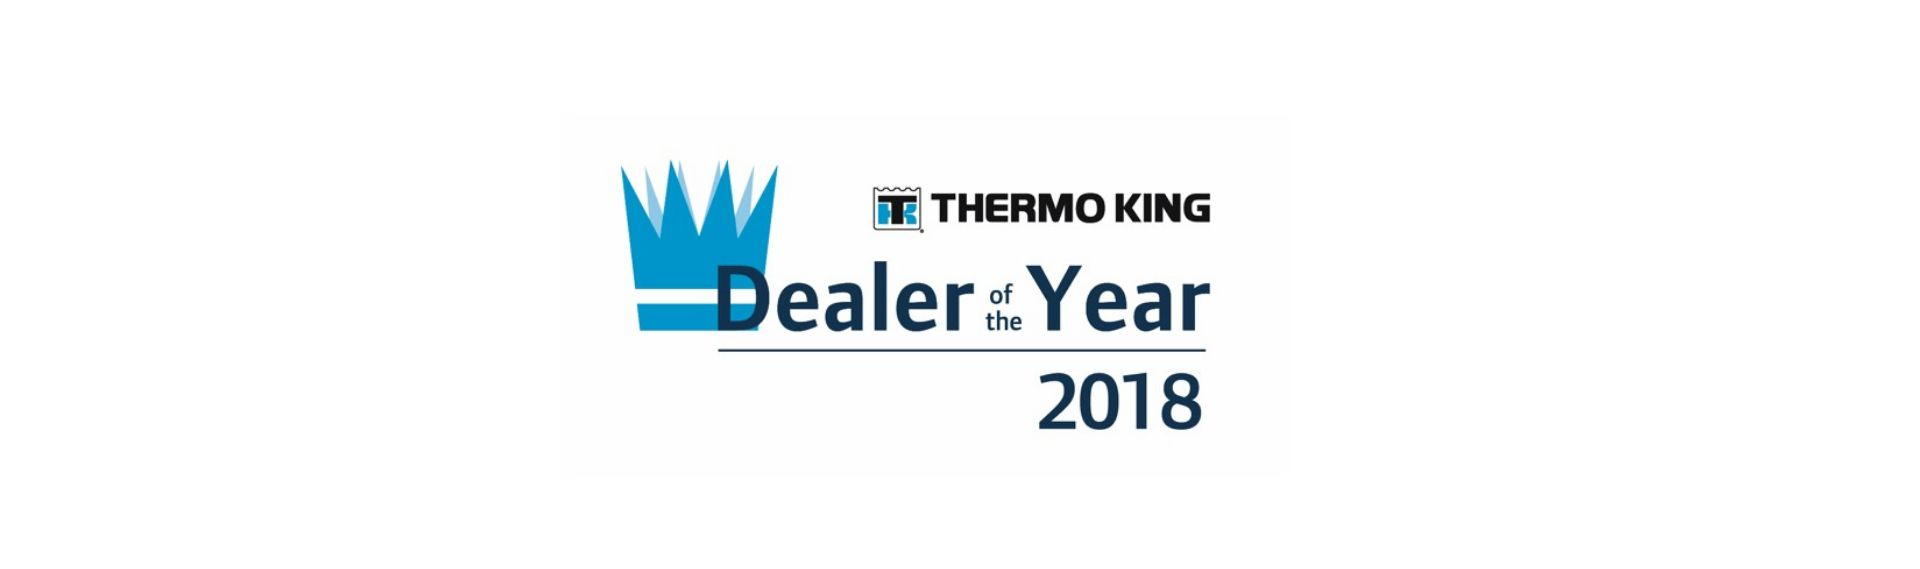 Thermo King West